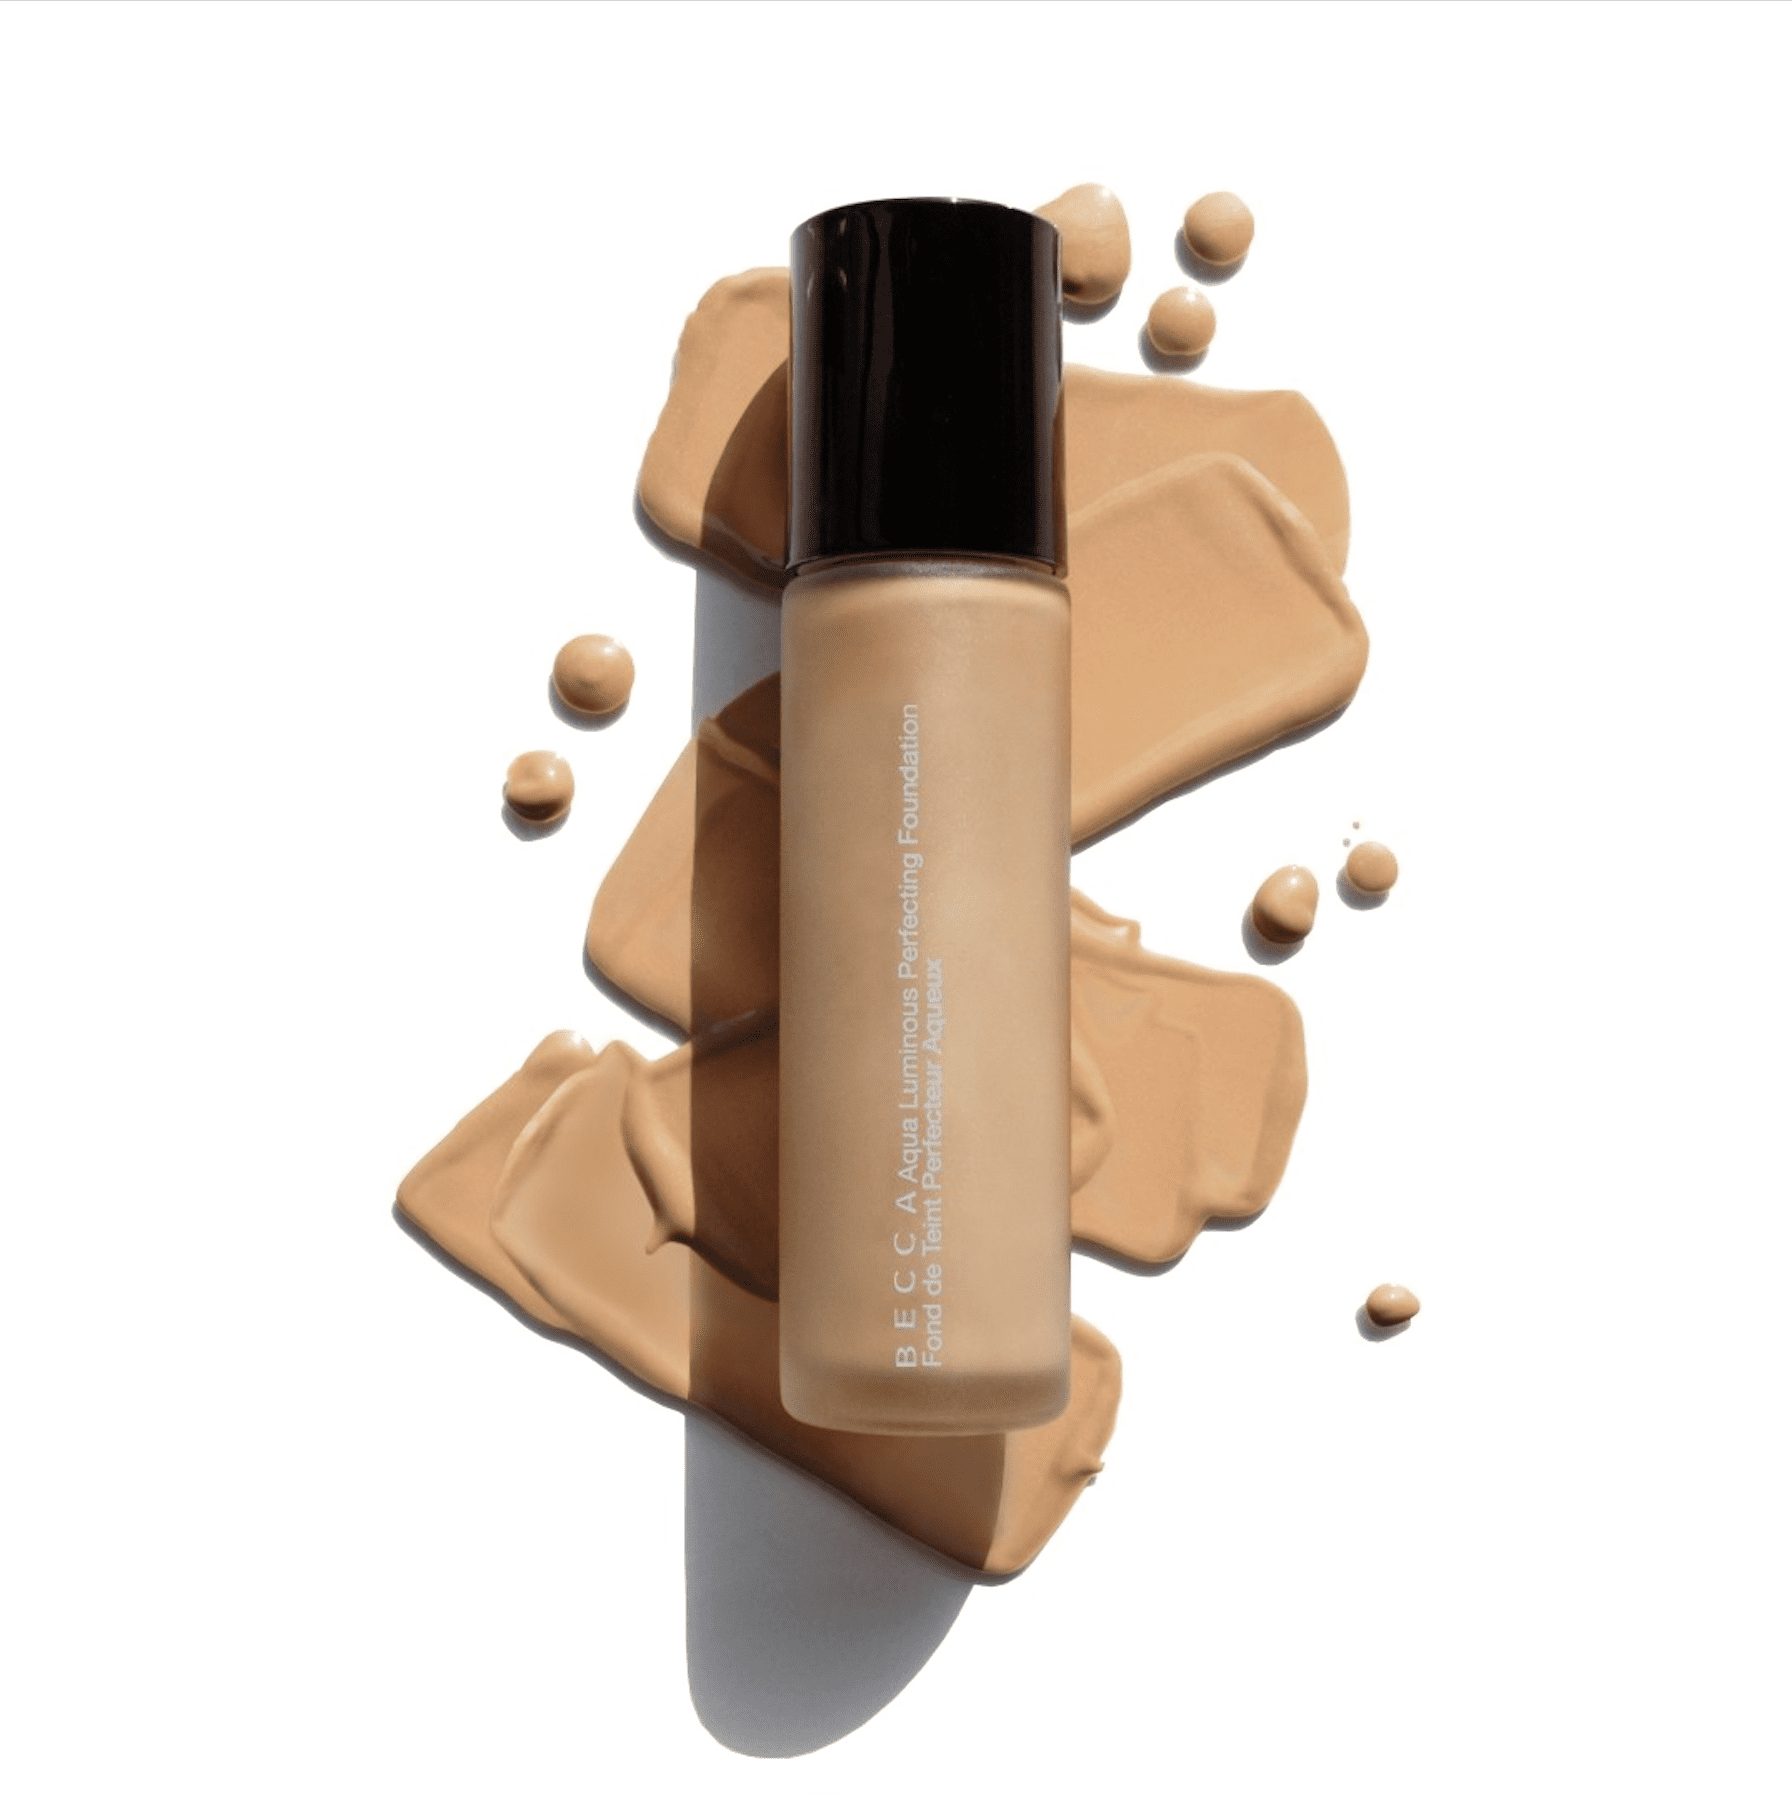 Aqua Luminous Foundation from Becca Cosmetics 7